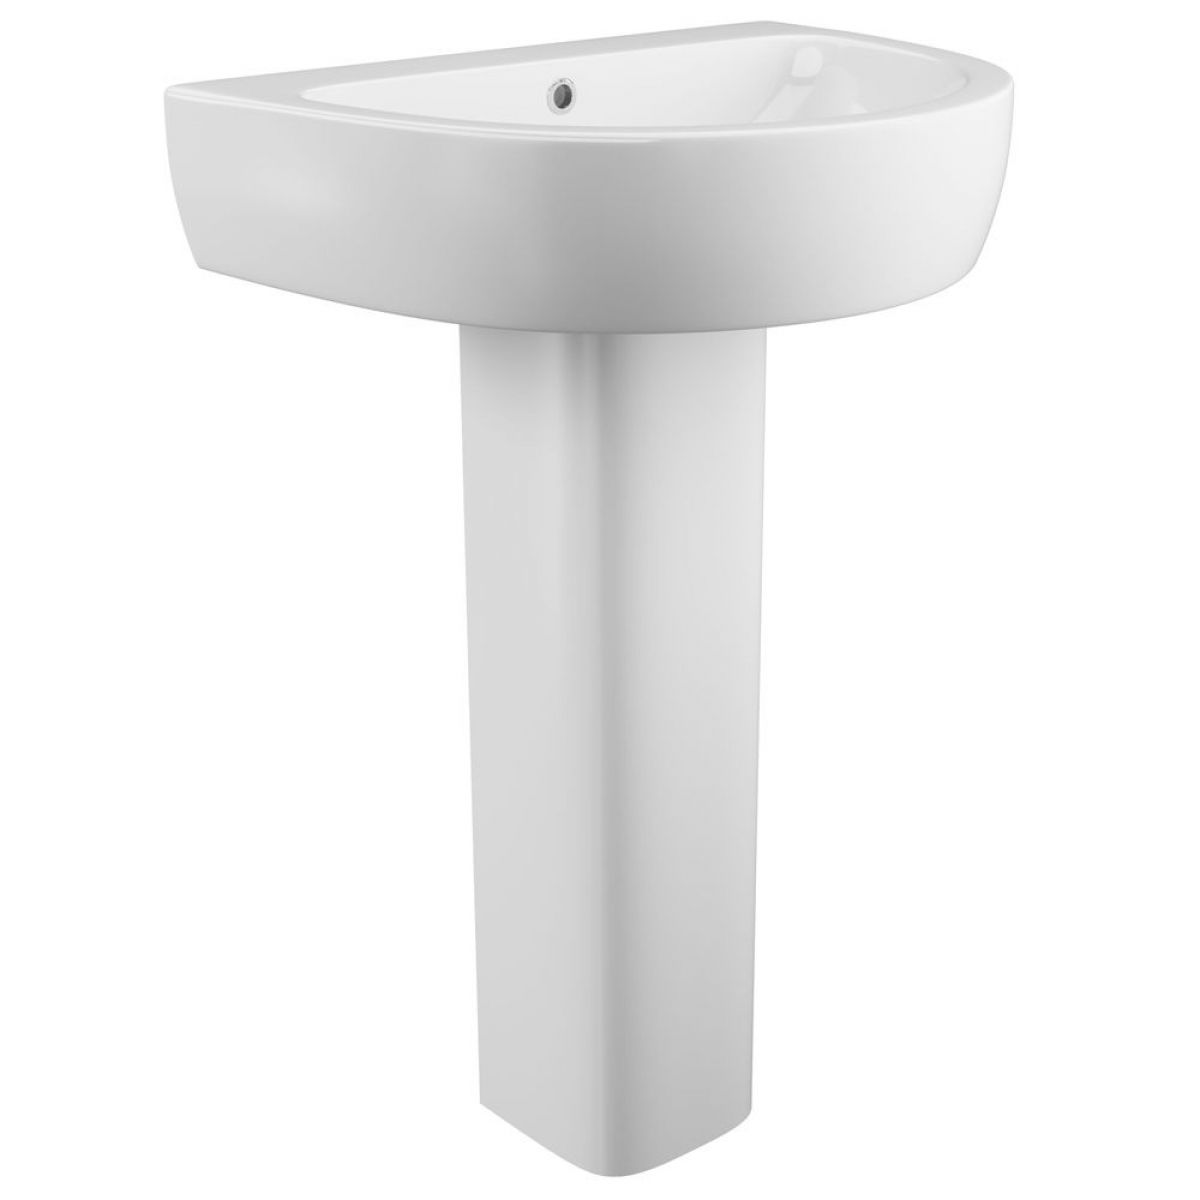 Cassellie Loxley 1 Tap Hole Basin with Full Pedestal